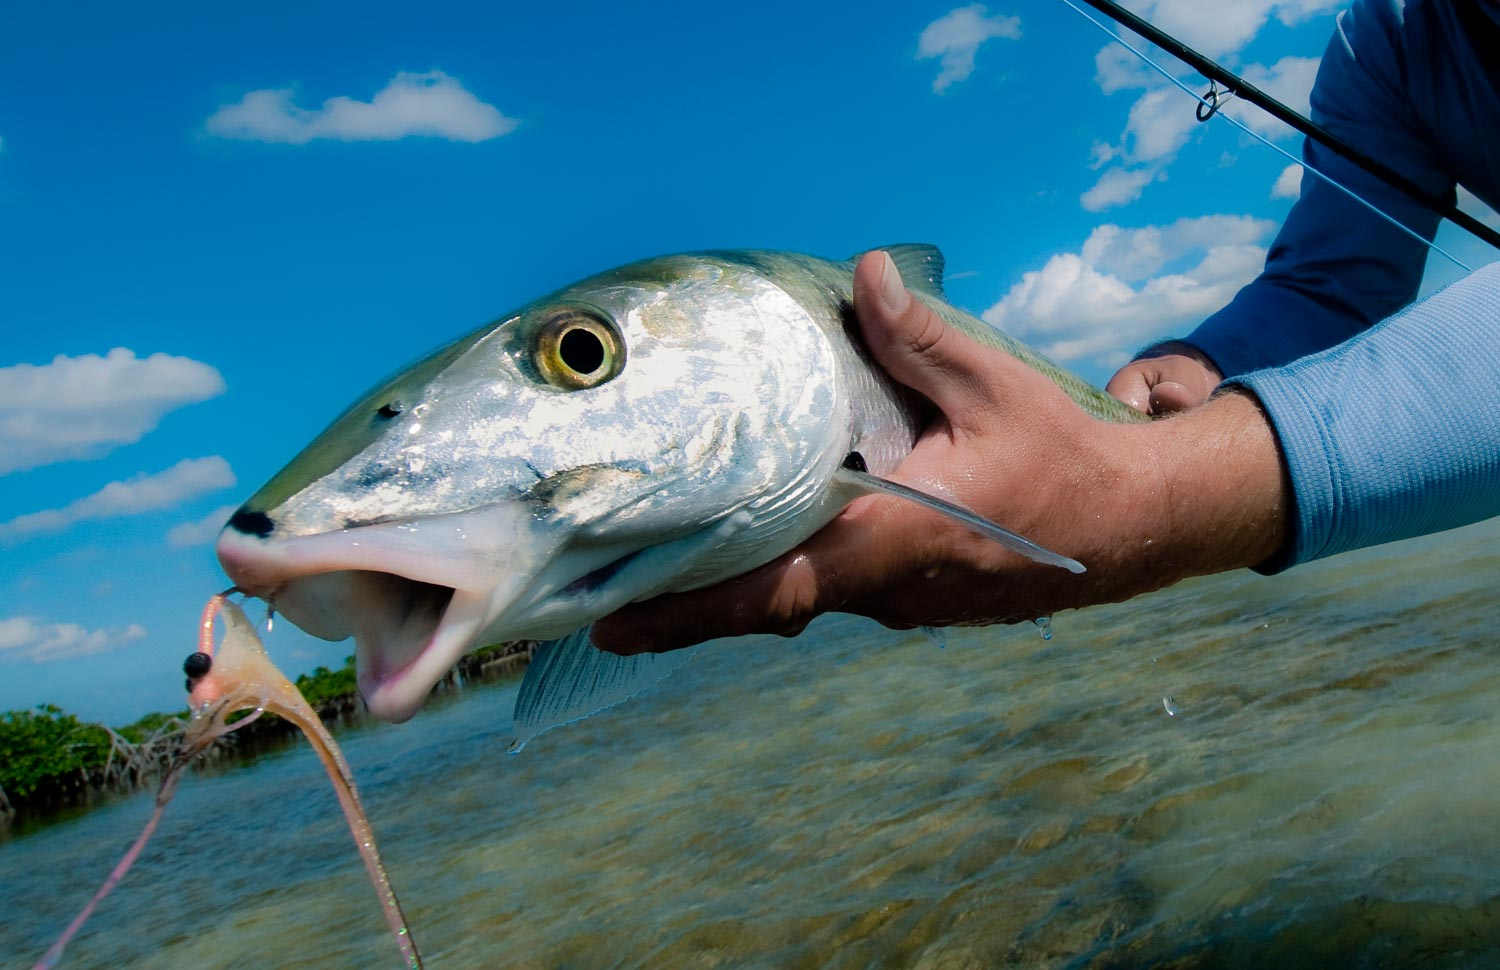 Diy bahamas bonefish with the family fly fishing gink and got cha photo by louis cahill solutioingenieria Image collections